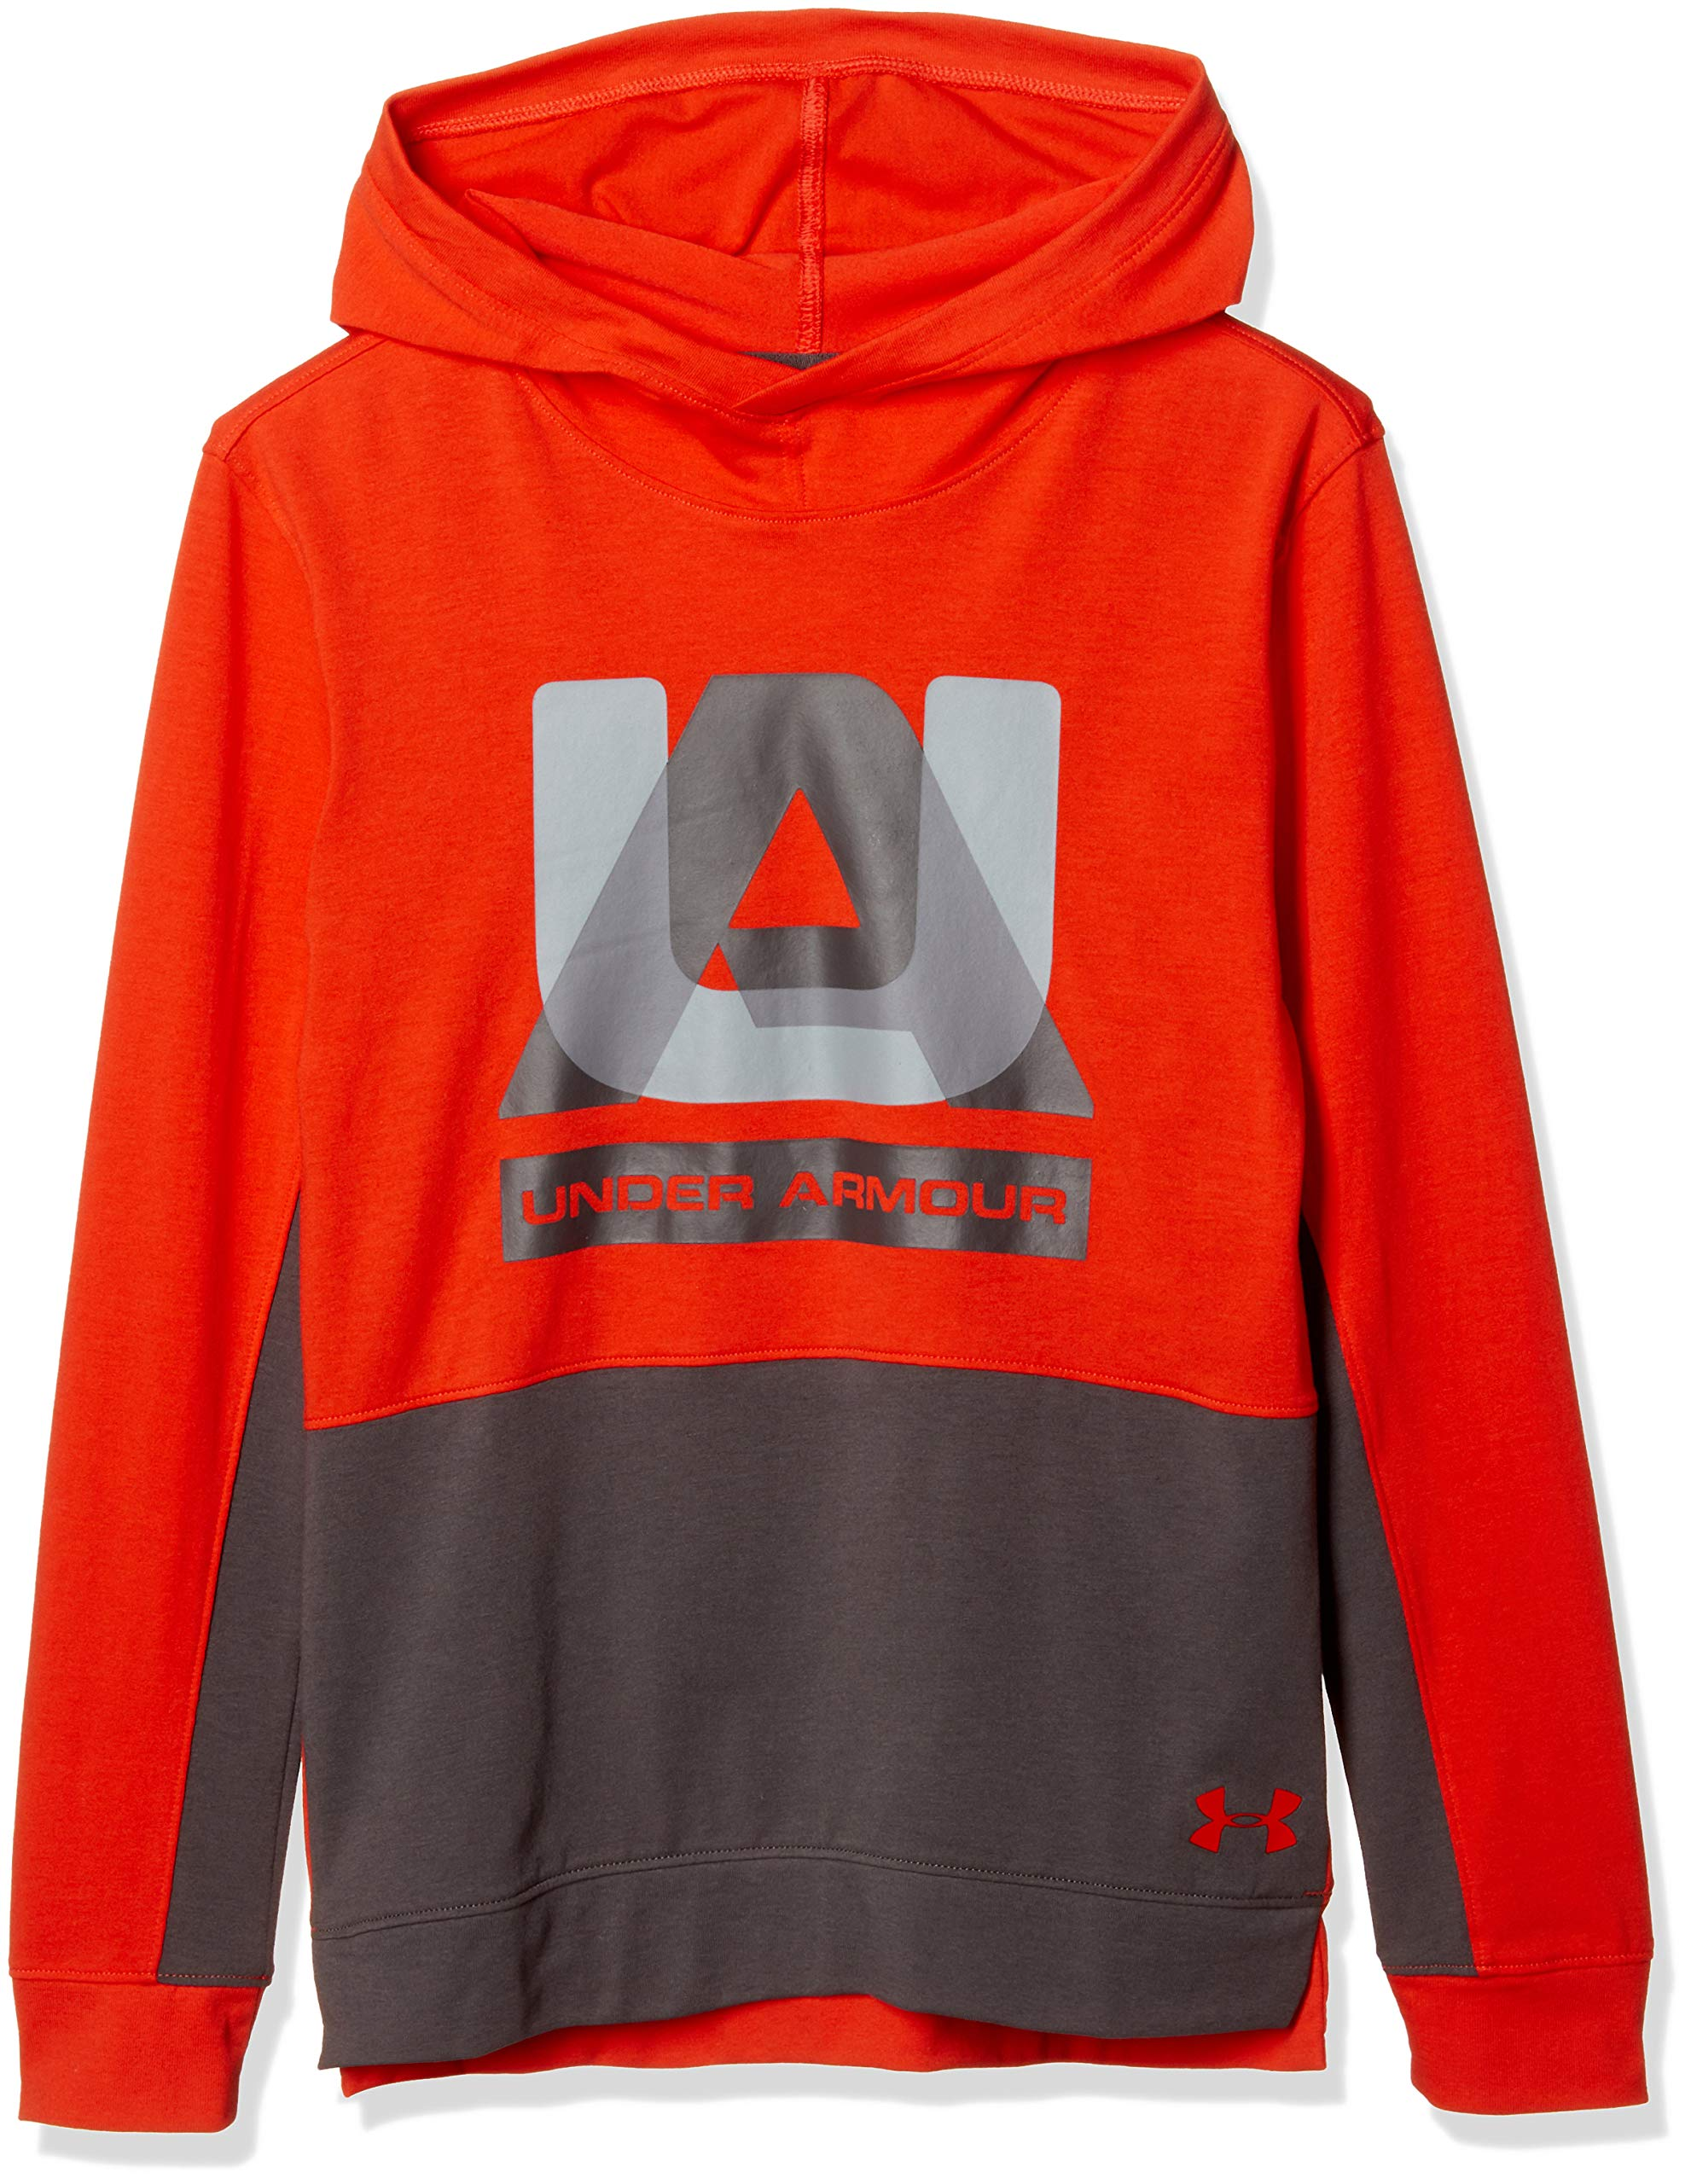 Under Armour Boys sportstyle Hoodie, Radio Red (892)/Charcoal, Youth X-Small by Under Armour